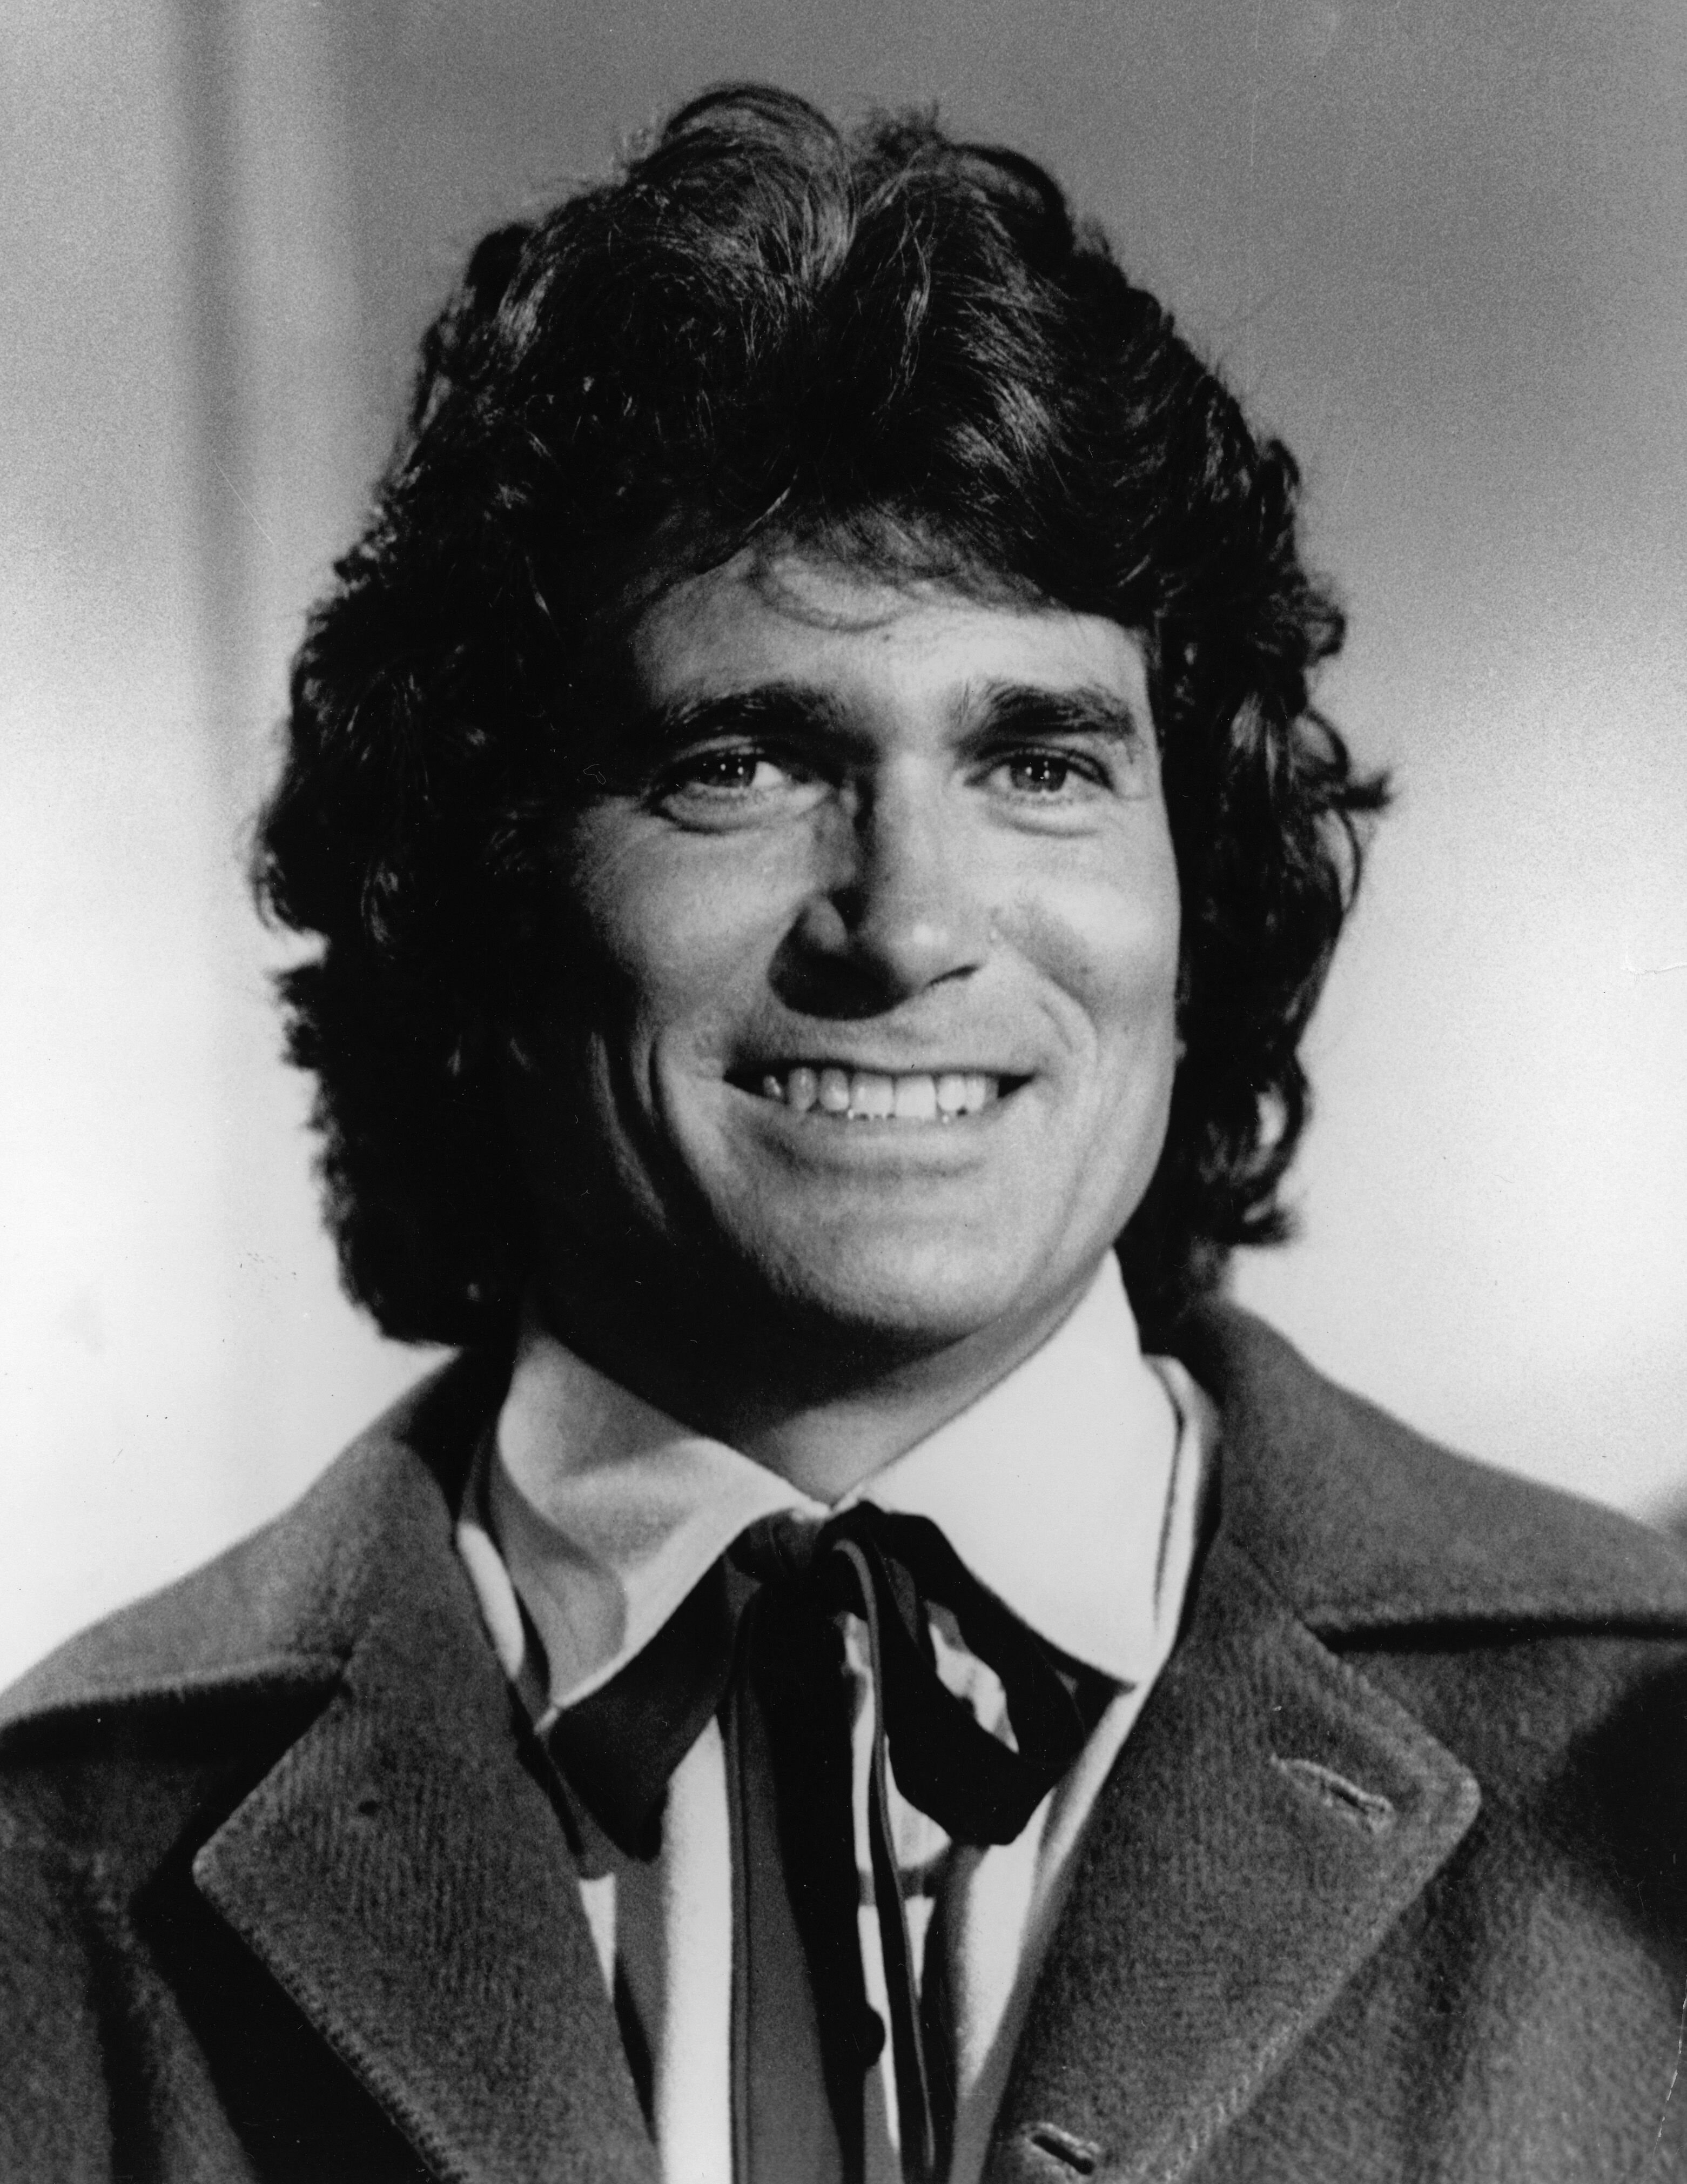 Michael Landon played major roles in Bonanza, Little House on the Prairie, and Highway to Hell. Photo: Getty Images/Global Images Ukraine